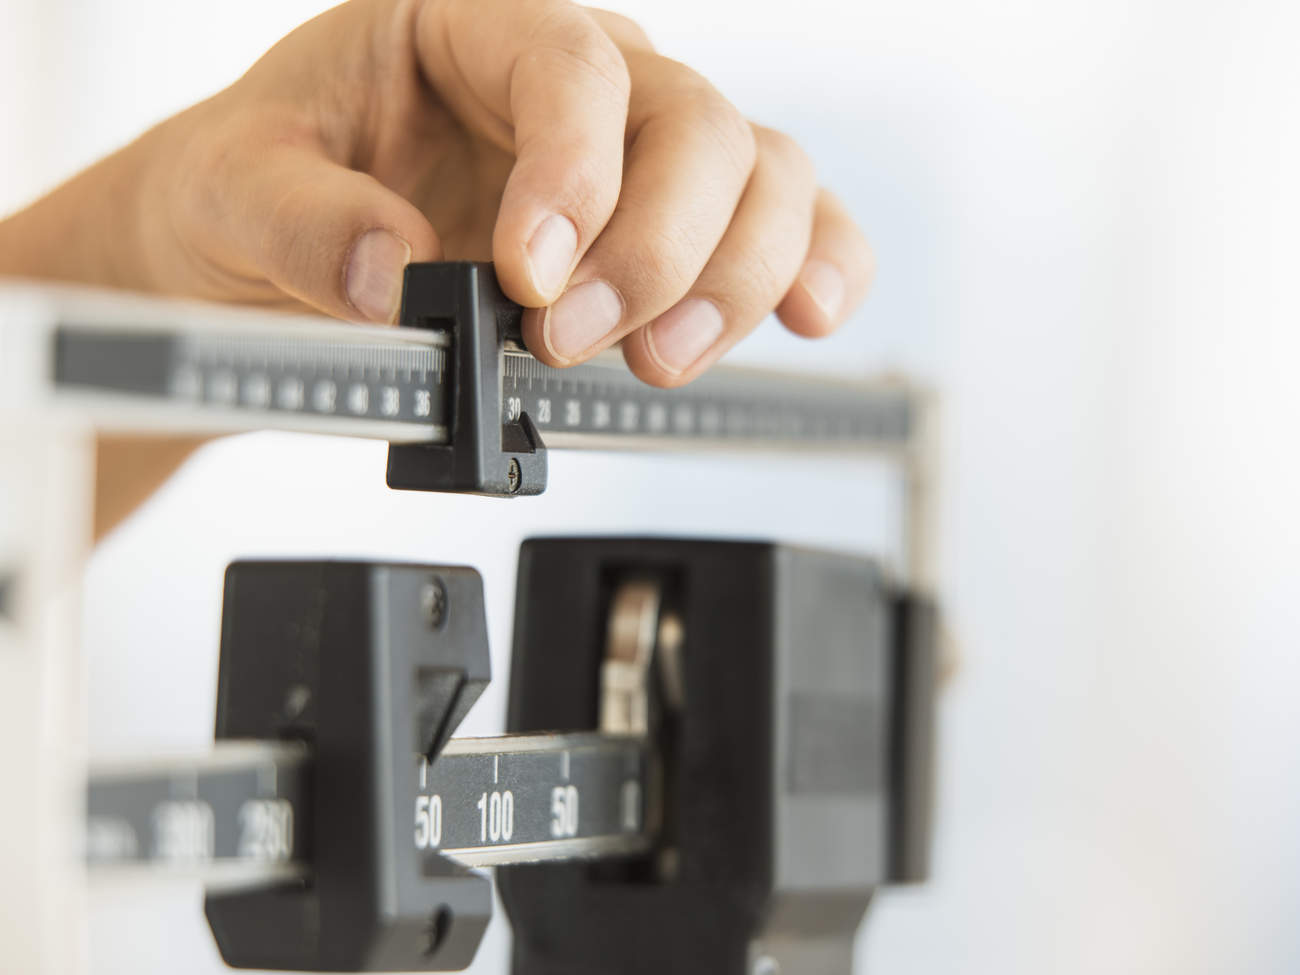 type-2-diabetes-condition-center-weight-scale